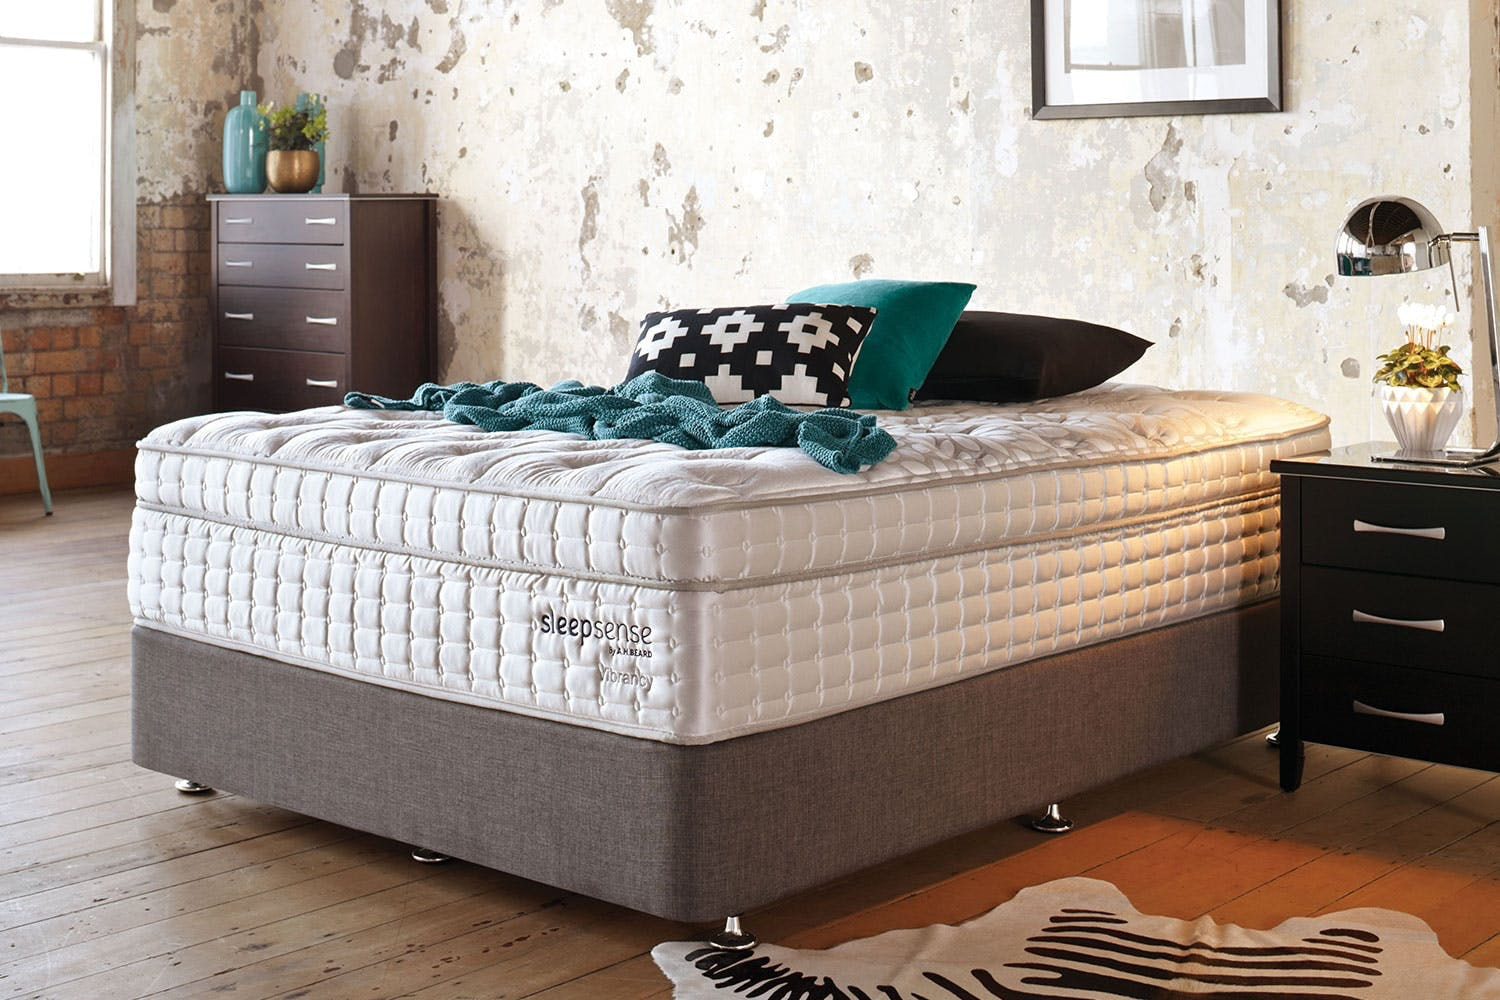 Vibrancy Super King Bed by Sleepsense